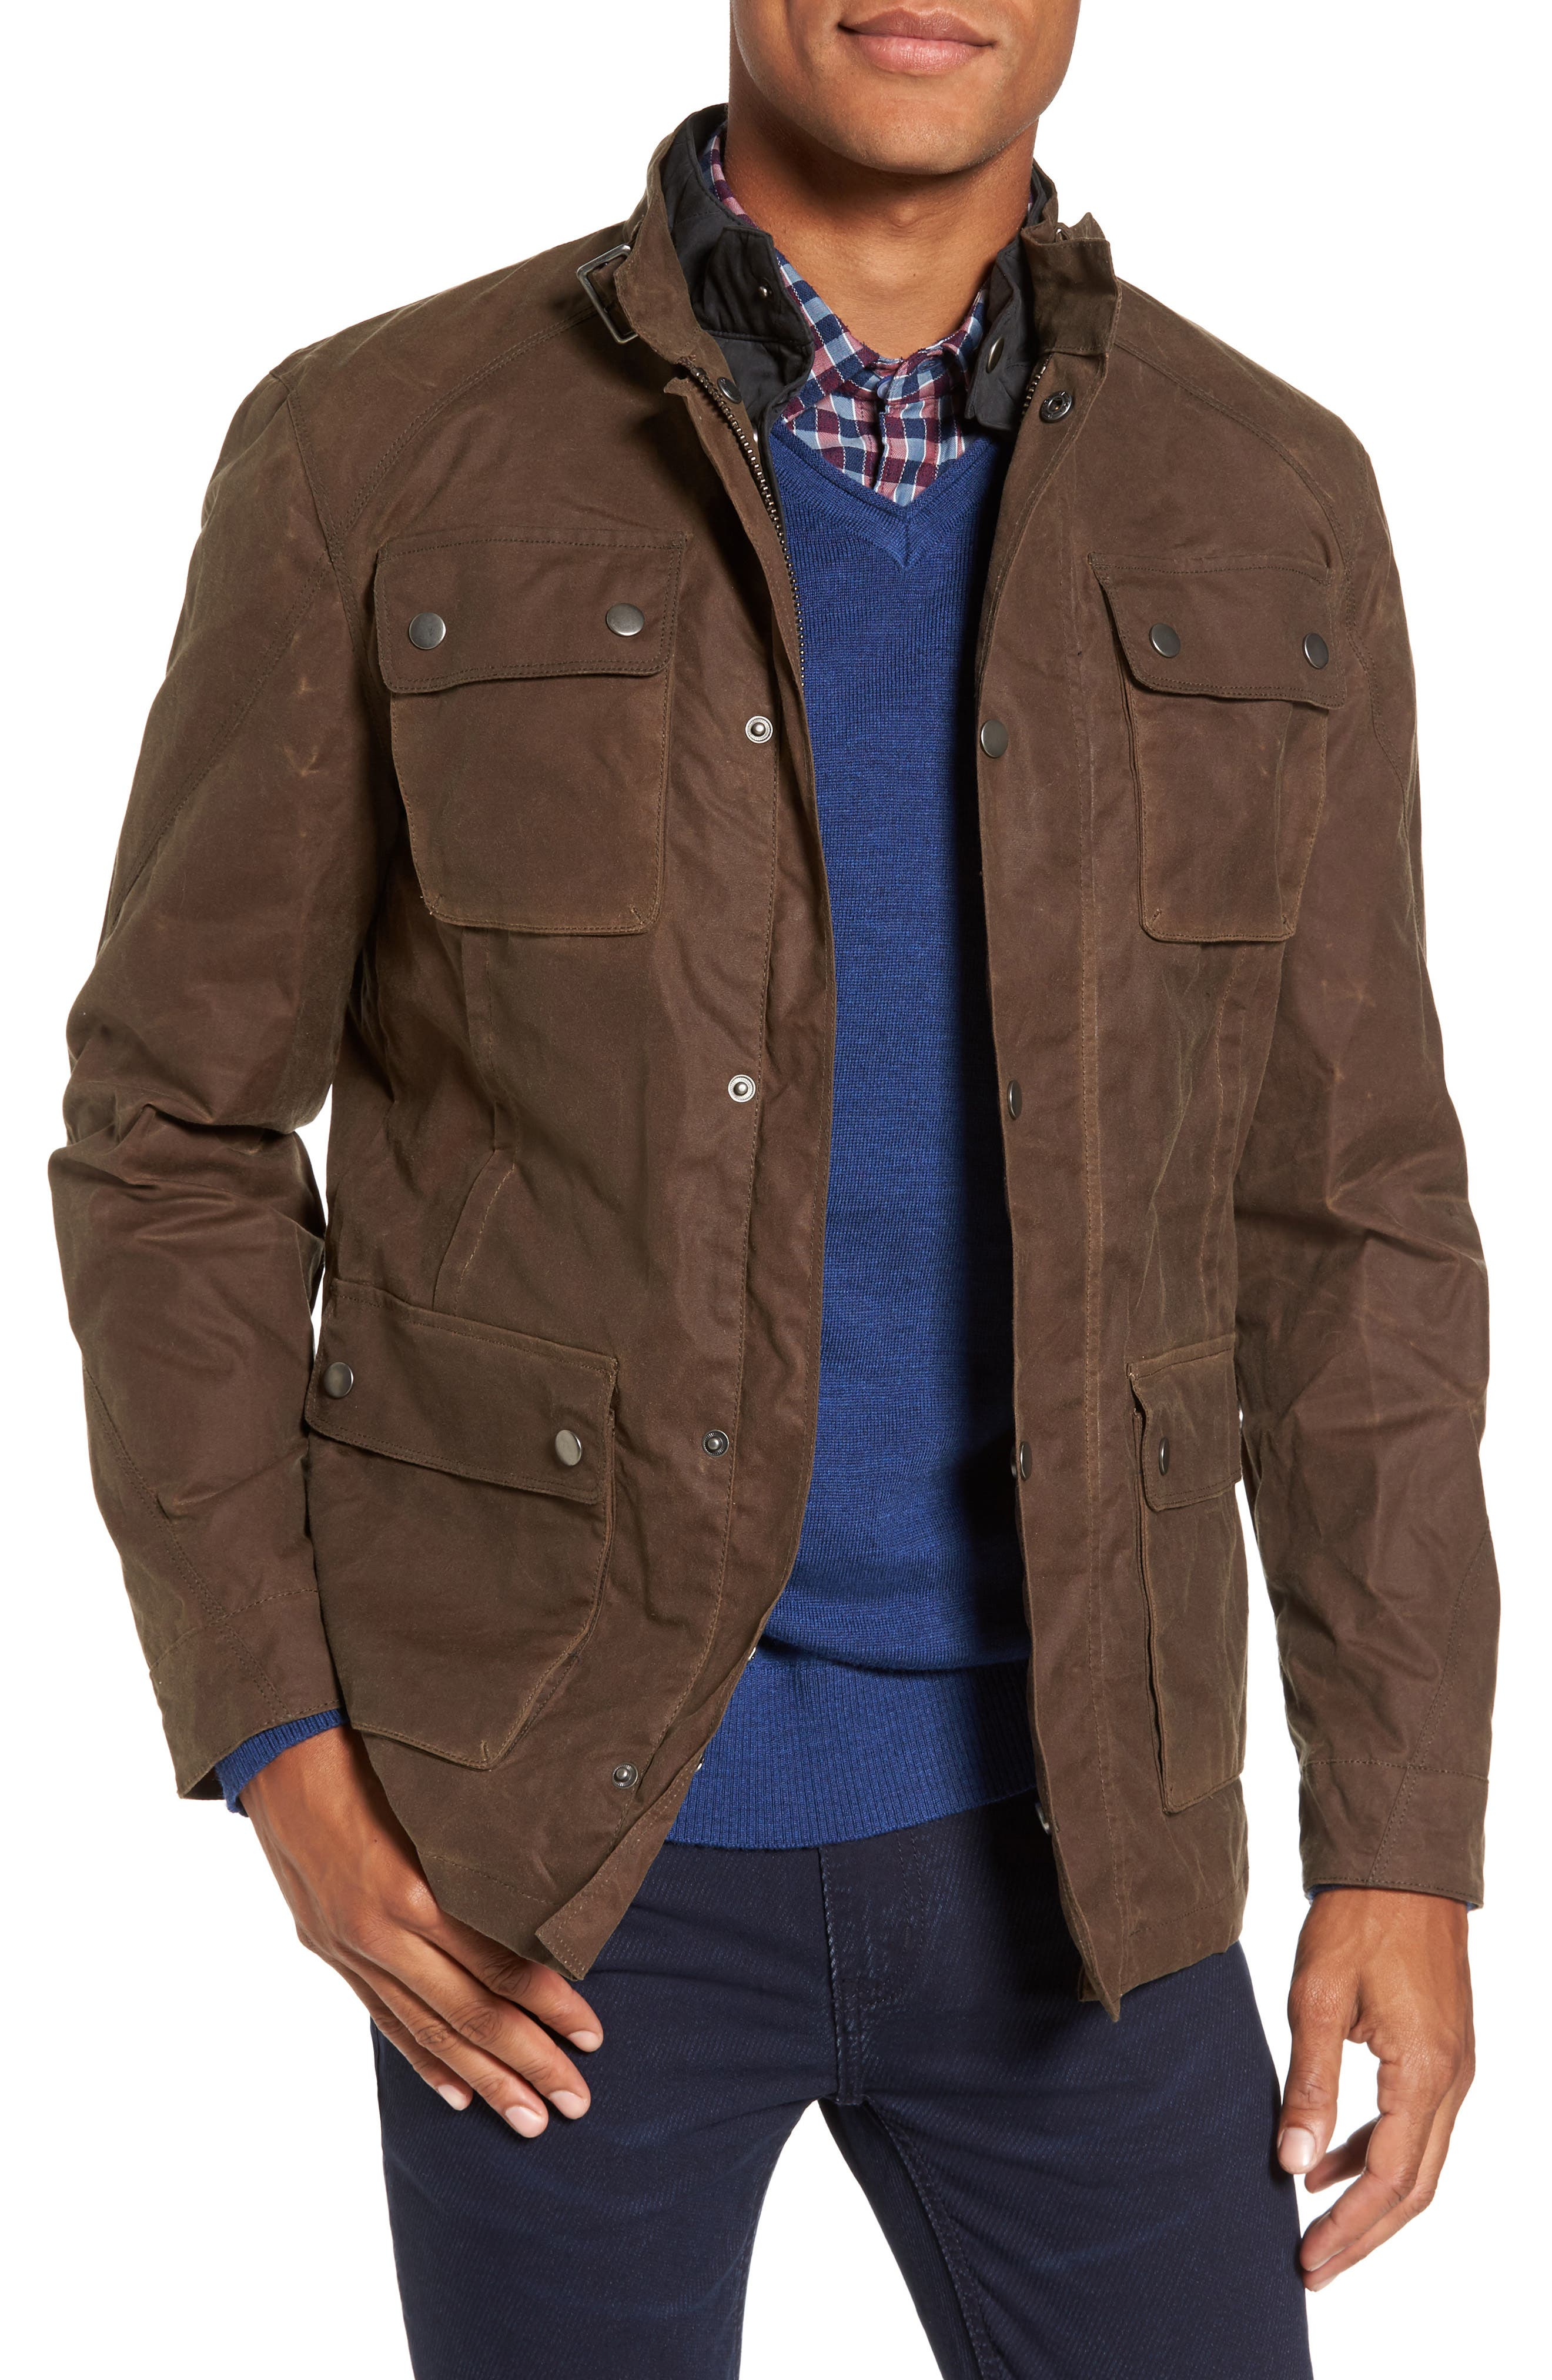 W.R.K 3-in-1 Waxed Cotton Jacket with Removable Vest